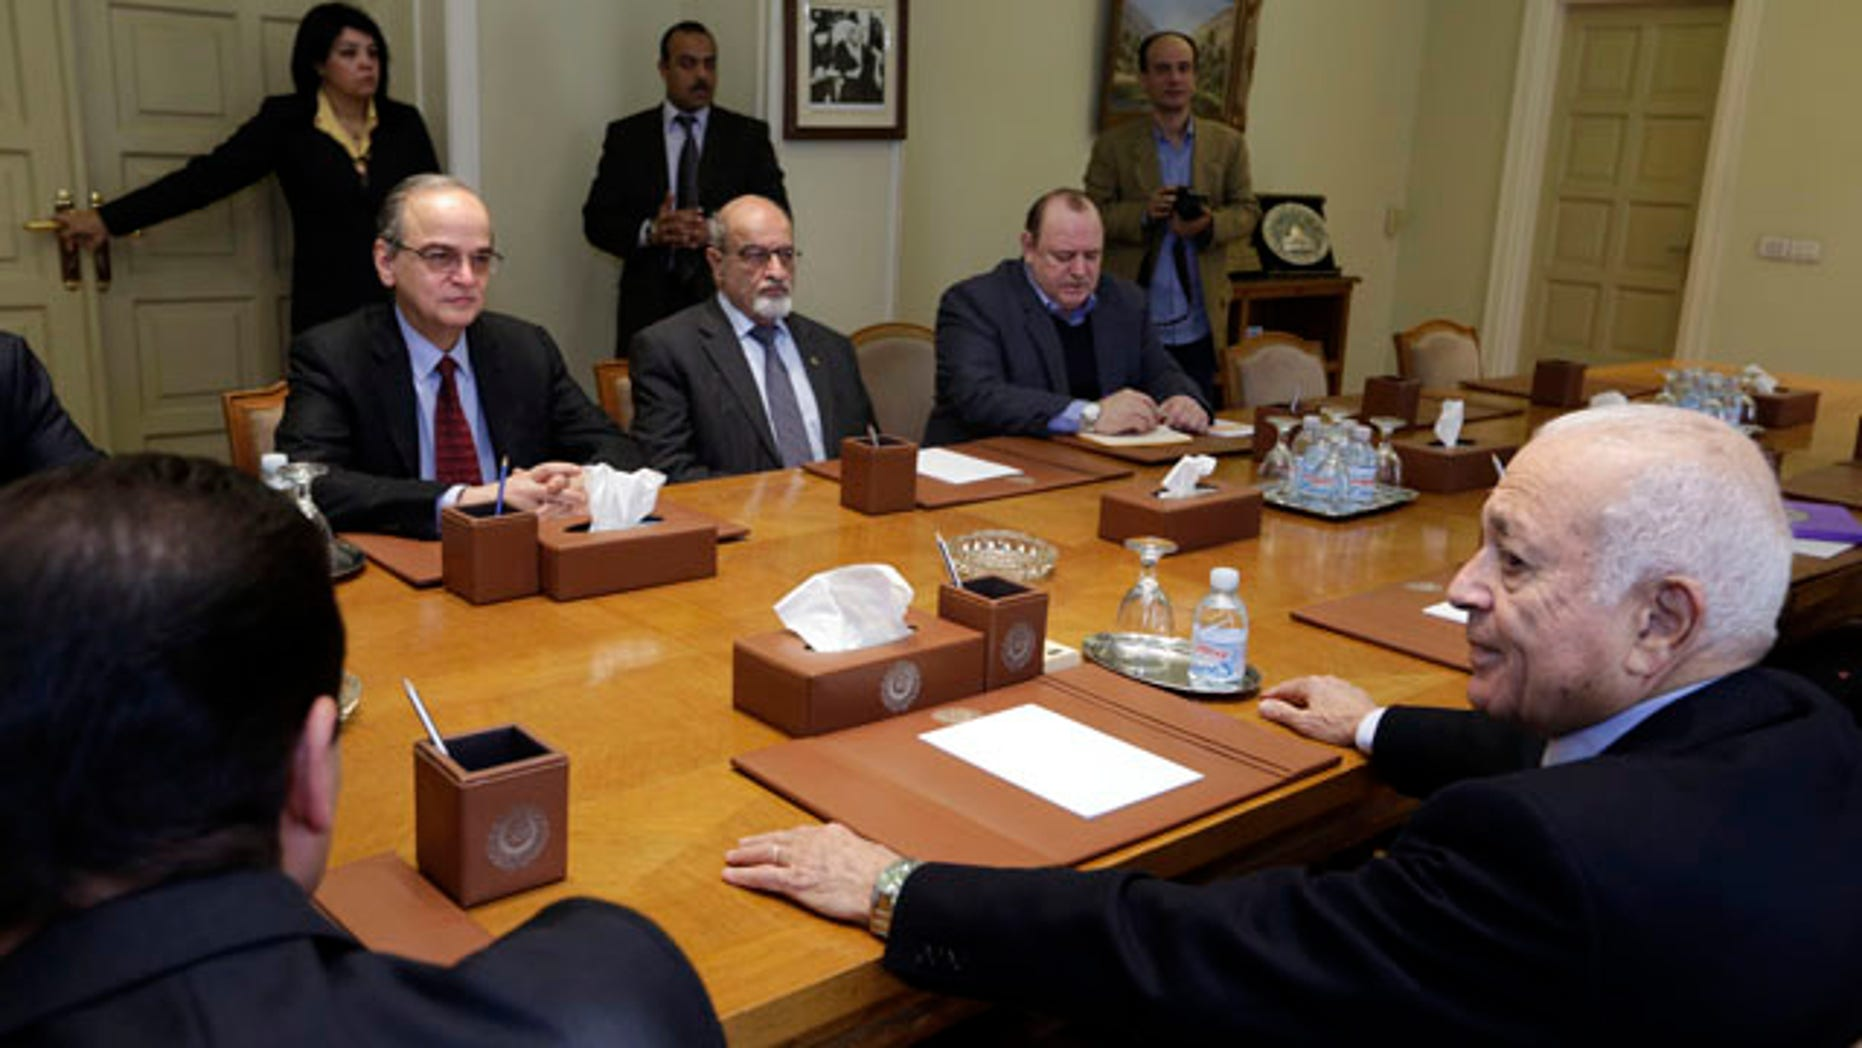 Dec. 27, 2014: The Arab League's Secretary-General Nabil Elaraby, right, meets with Hadi Bahra, the head of the Syrian National Coalition, the country's main political opposition group, left, and Haitham al-Maleh, a member of the group, second left, at the league's headquarters in Cairo. (AP Photo/Amr Nabil)